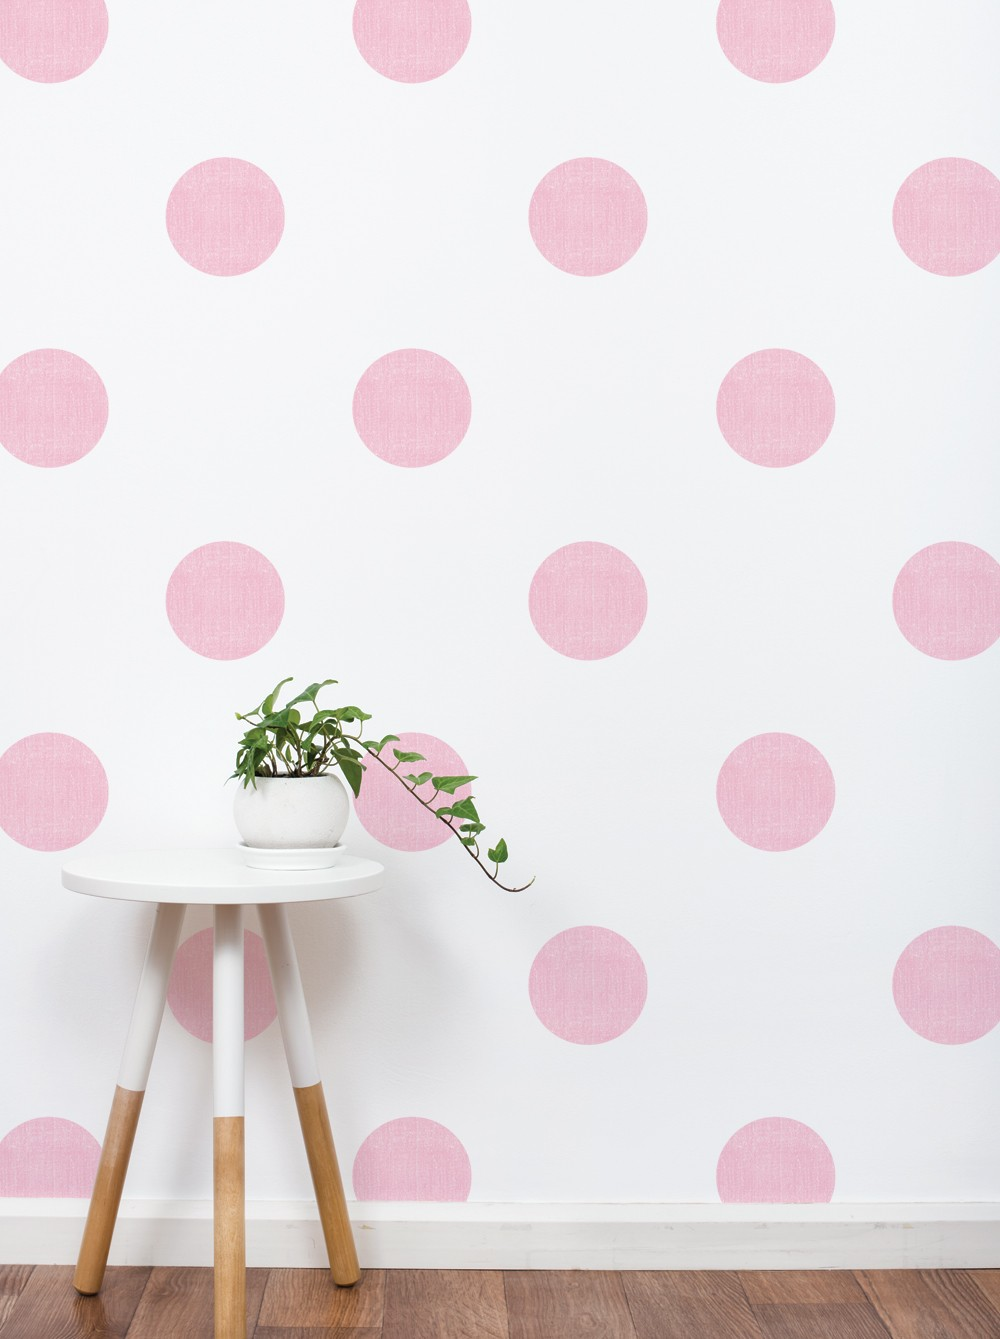 Textured Dots Wall Sticker, 6 Inch Baby Pink by Simple Shapes